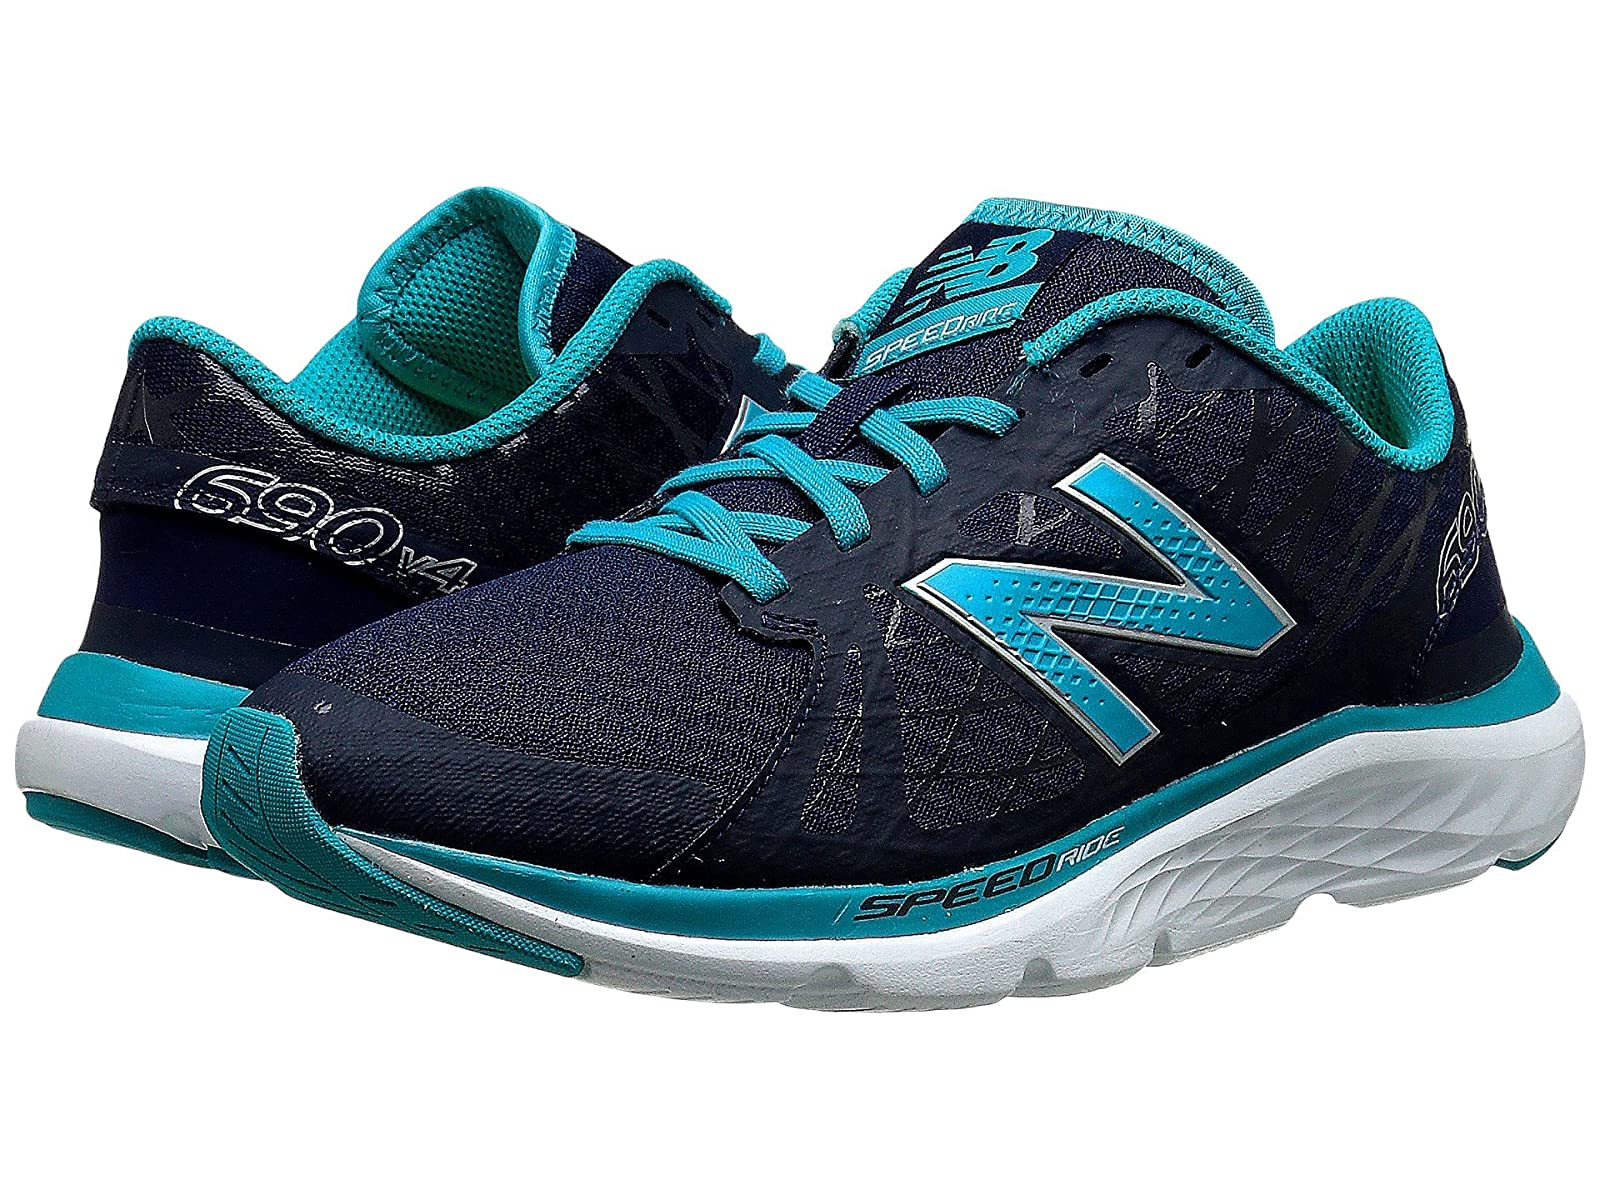 New Balance W690v4Cheap and distinctive eye-catching shoes